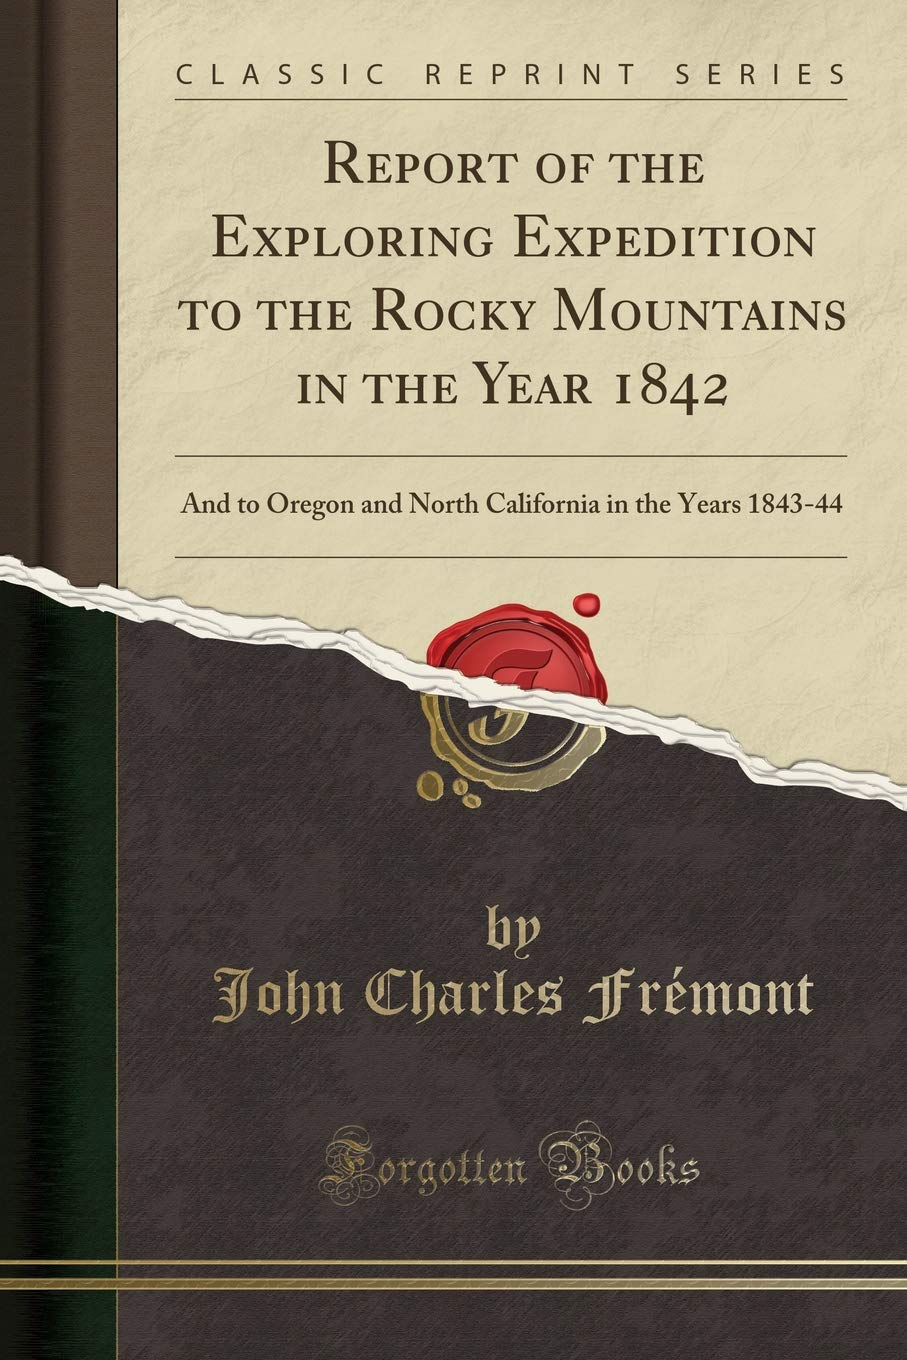 Report of the Exploring Expedition to the Rocky Mountains in the Year 1842: And to Oregon and North California in the Years 1843-44 (Classic Reprint) ebook